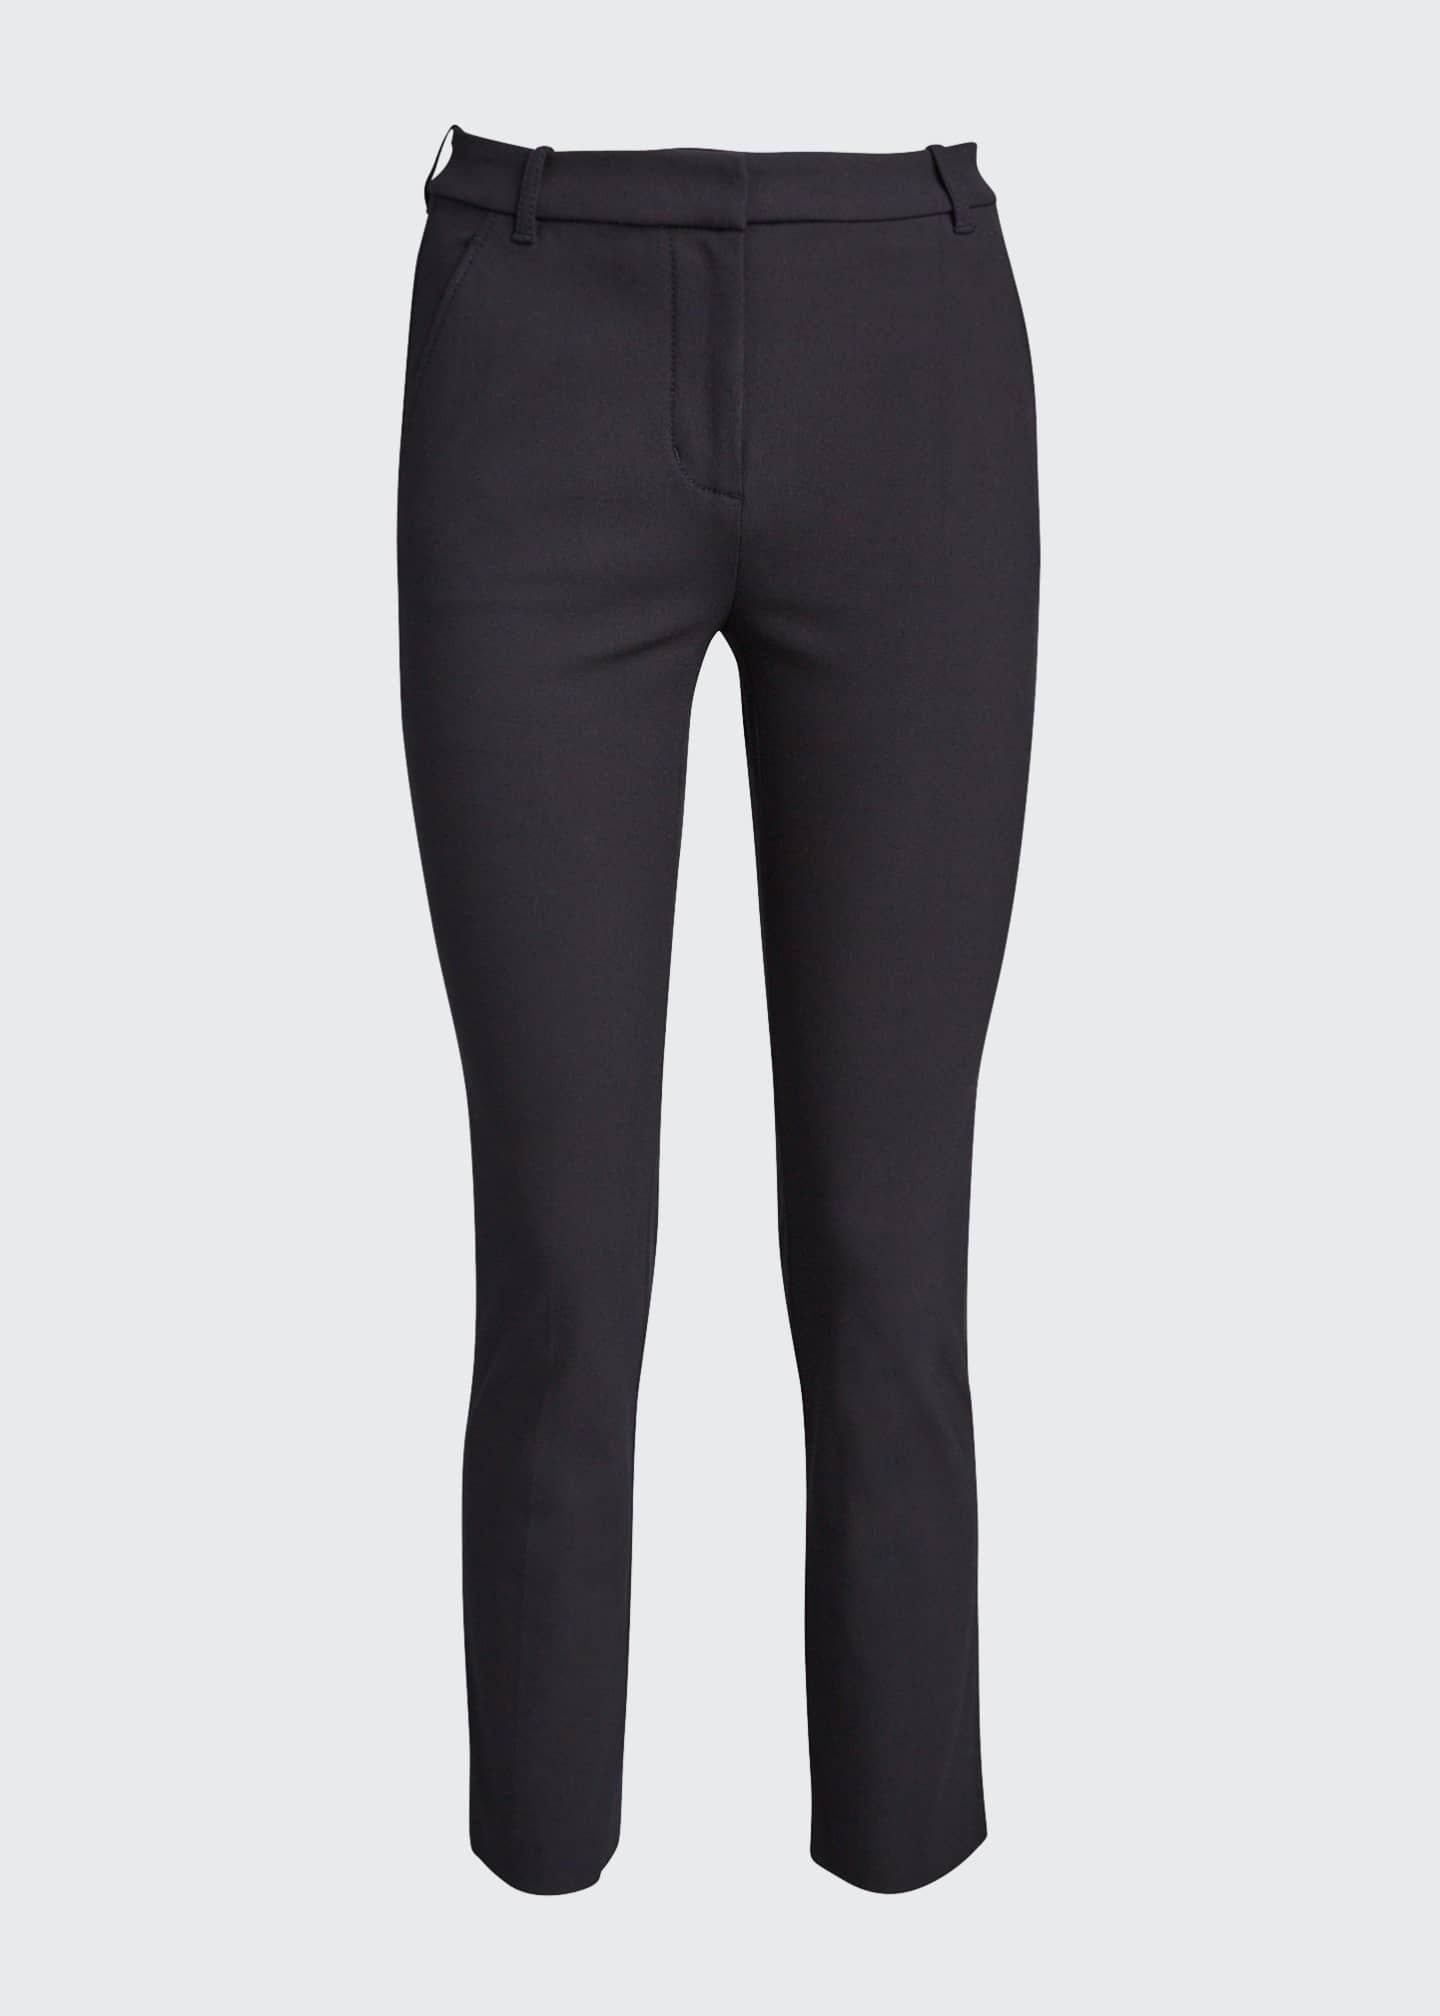 Image 5 of 5: Legging Ankle Pants